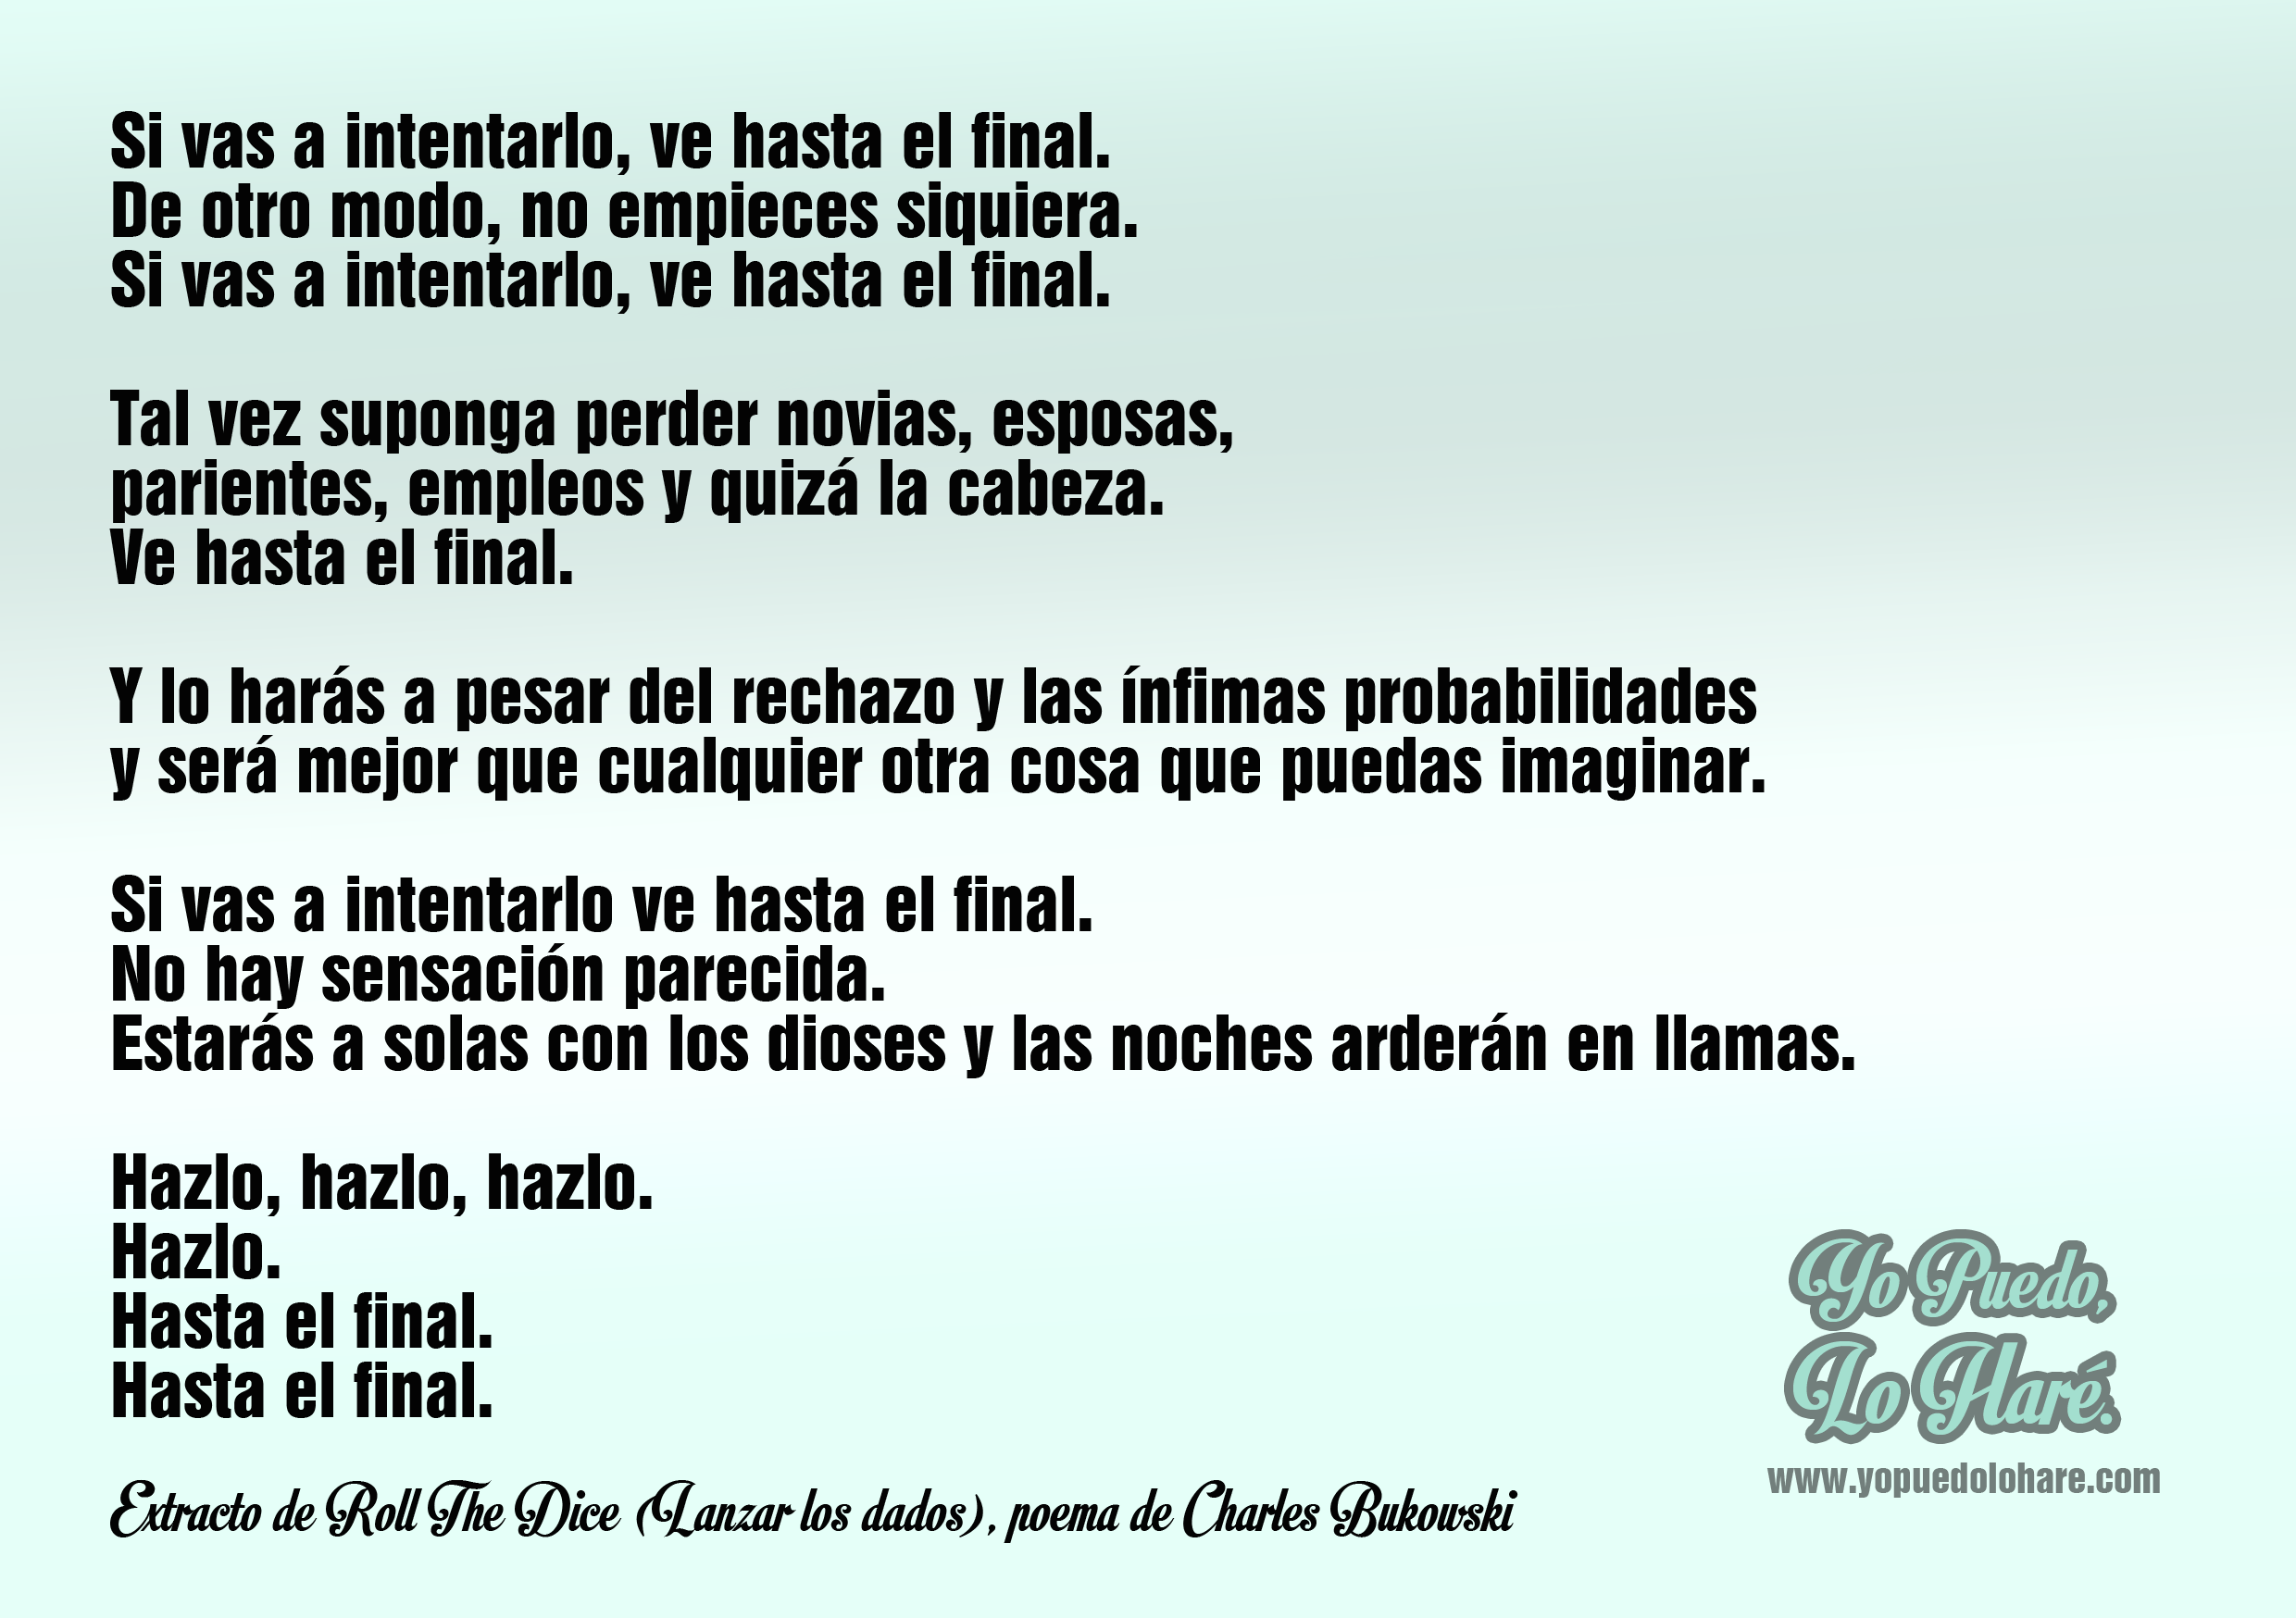 Finals Quotes Hazlohasta El Finalyopuedolohare  Quotes  Pinterest